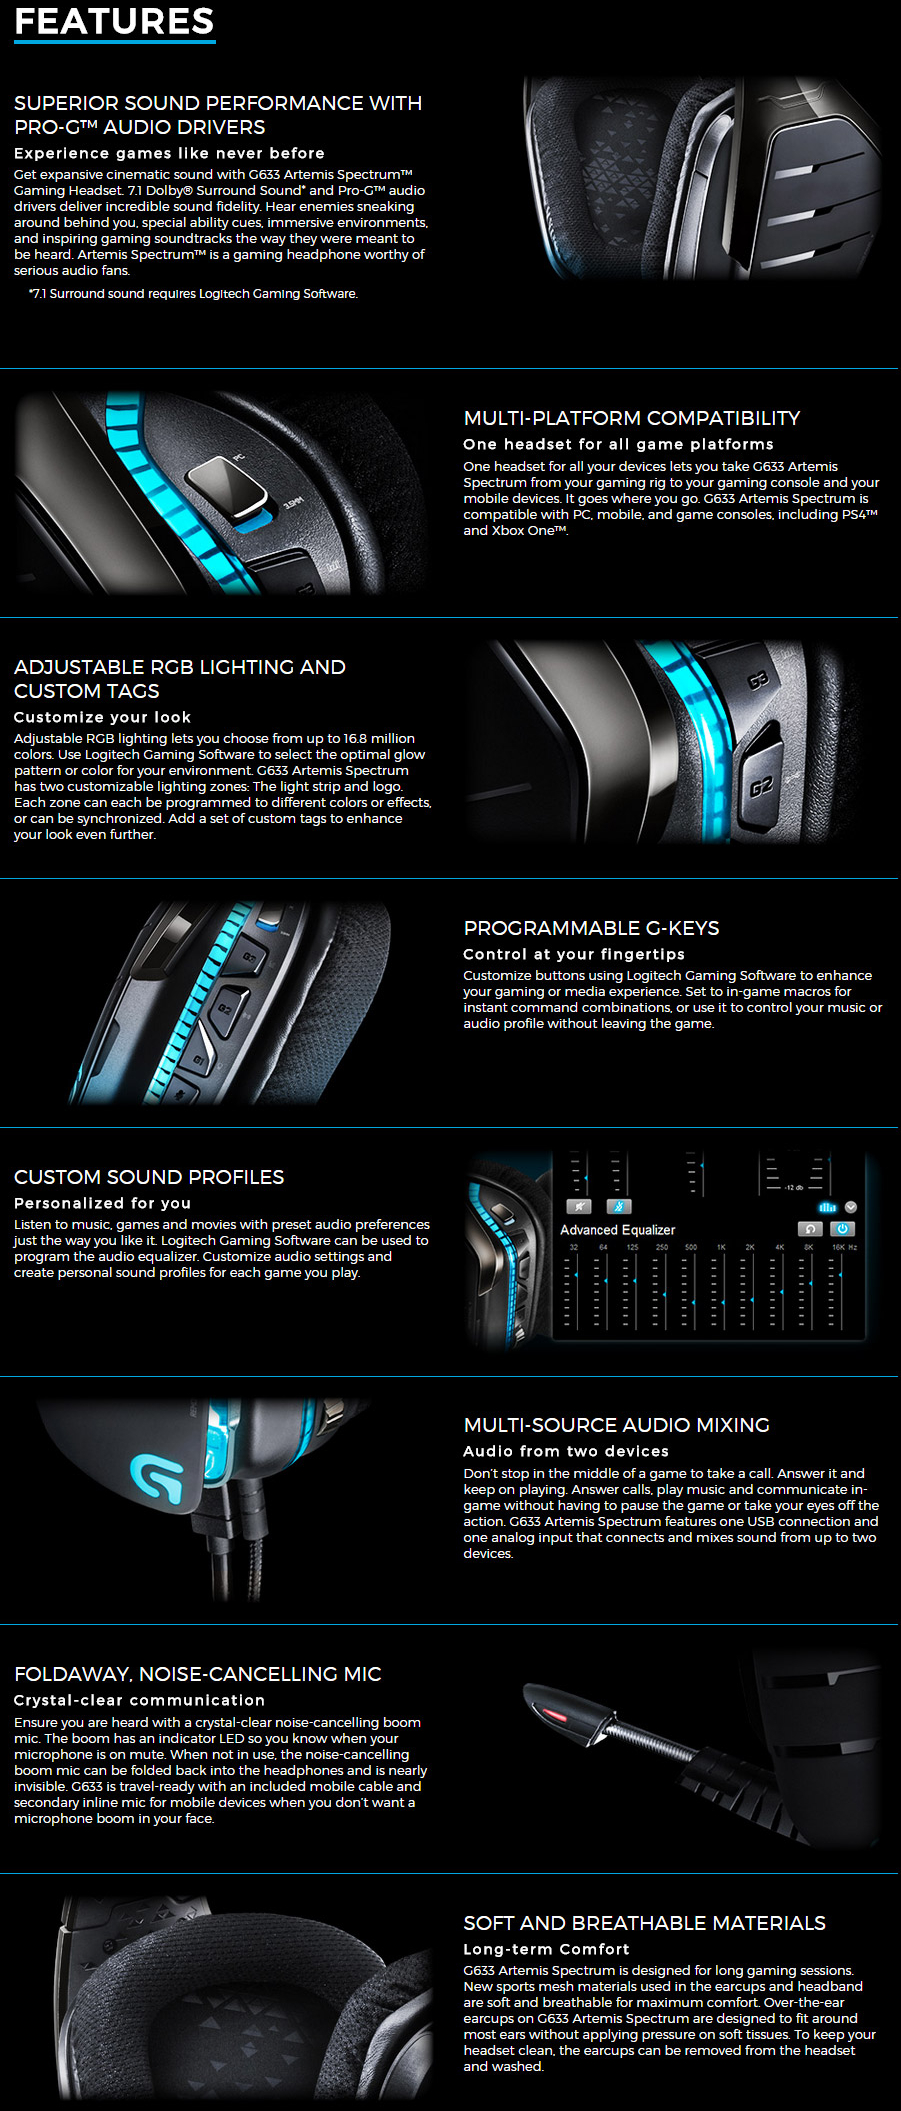 Logitech G633 Artemis Spectrum Rgb 7 1 Surround Gaming Headset Now 169 Deals And Coupons Best Bargains